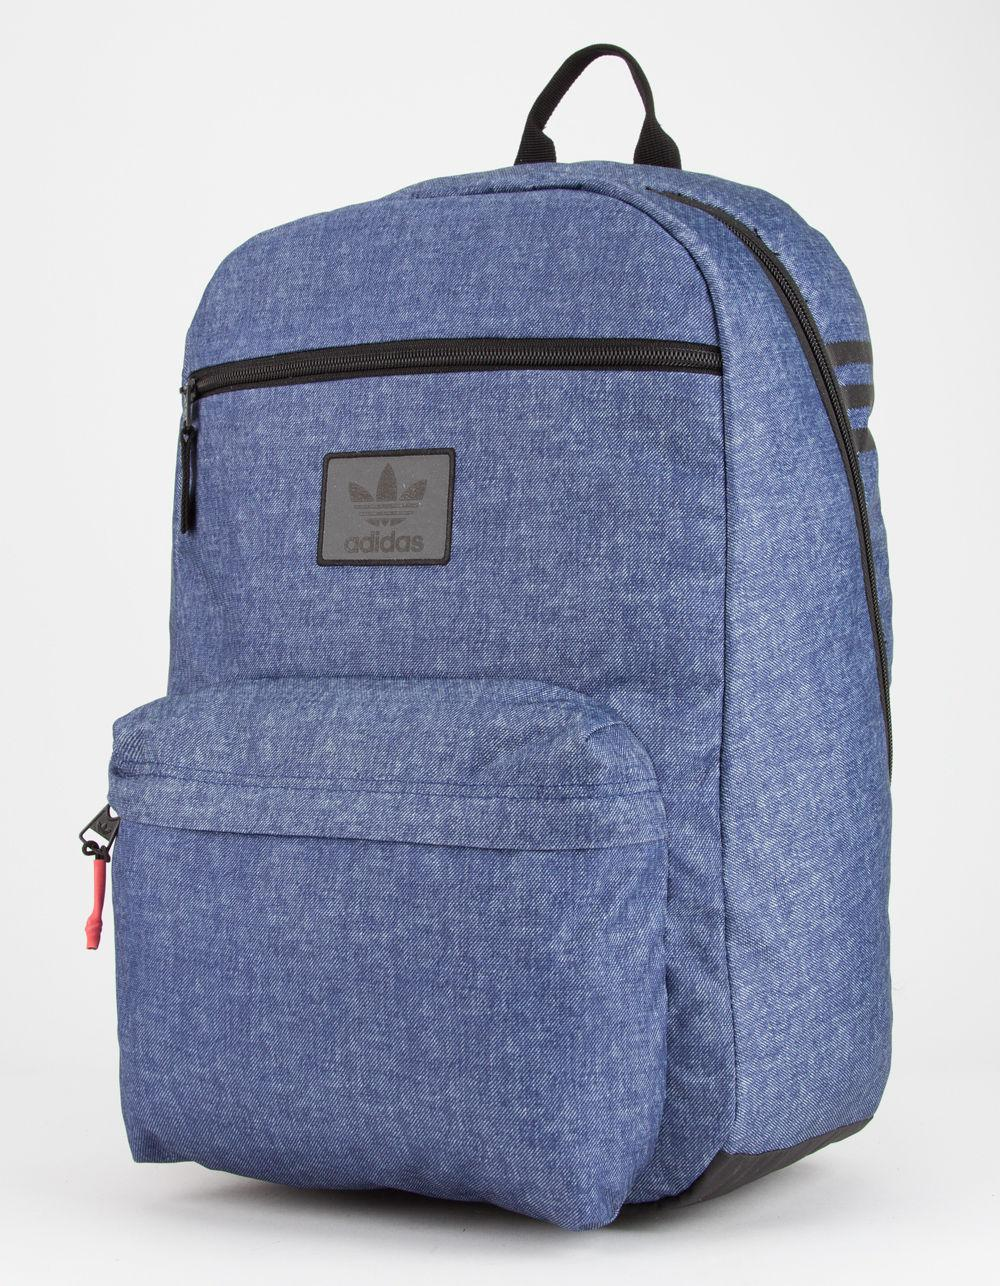 Lyst - adidas Originals National Backpack in Blue for Men 346f20fe2f7be